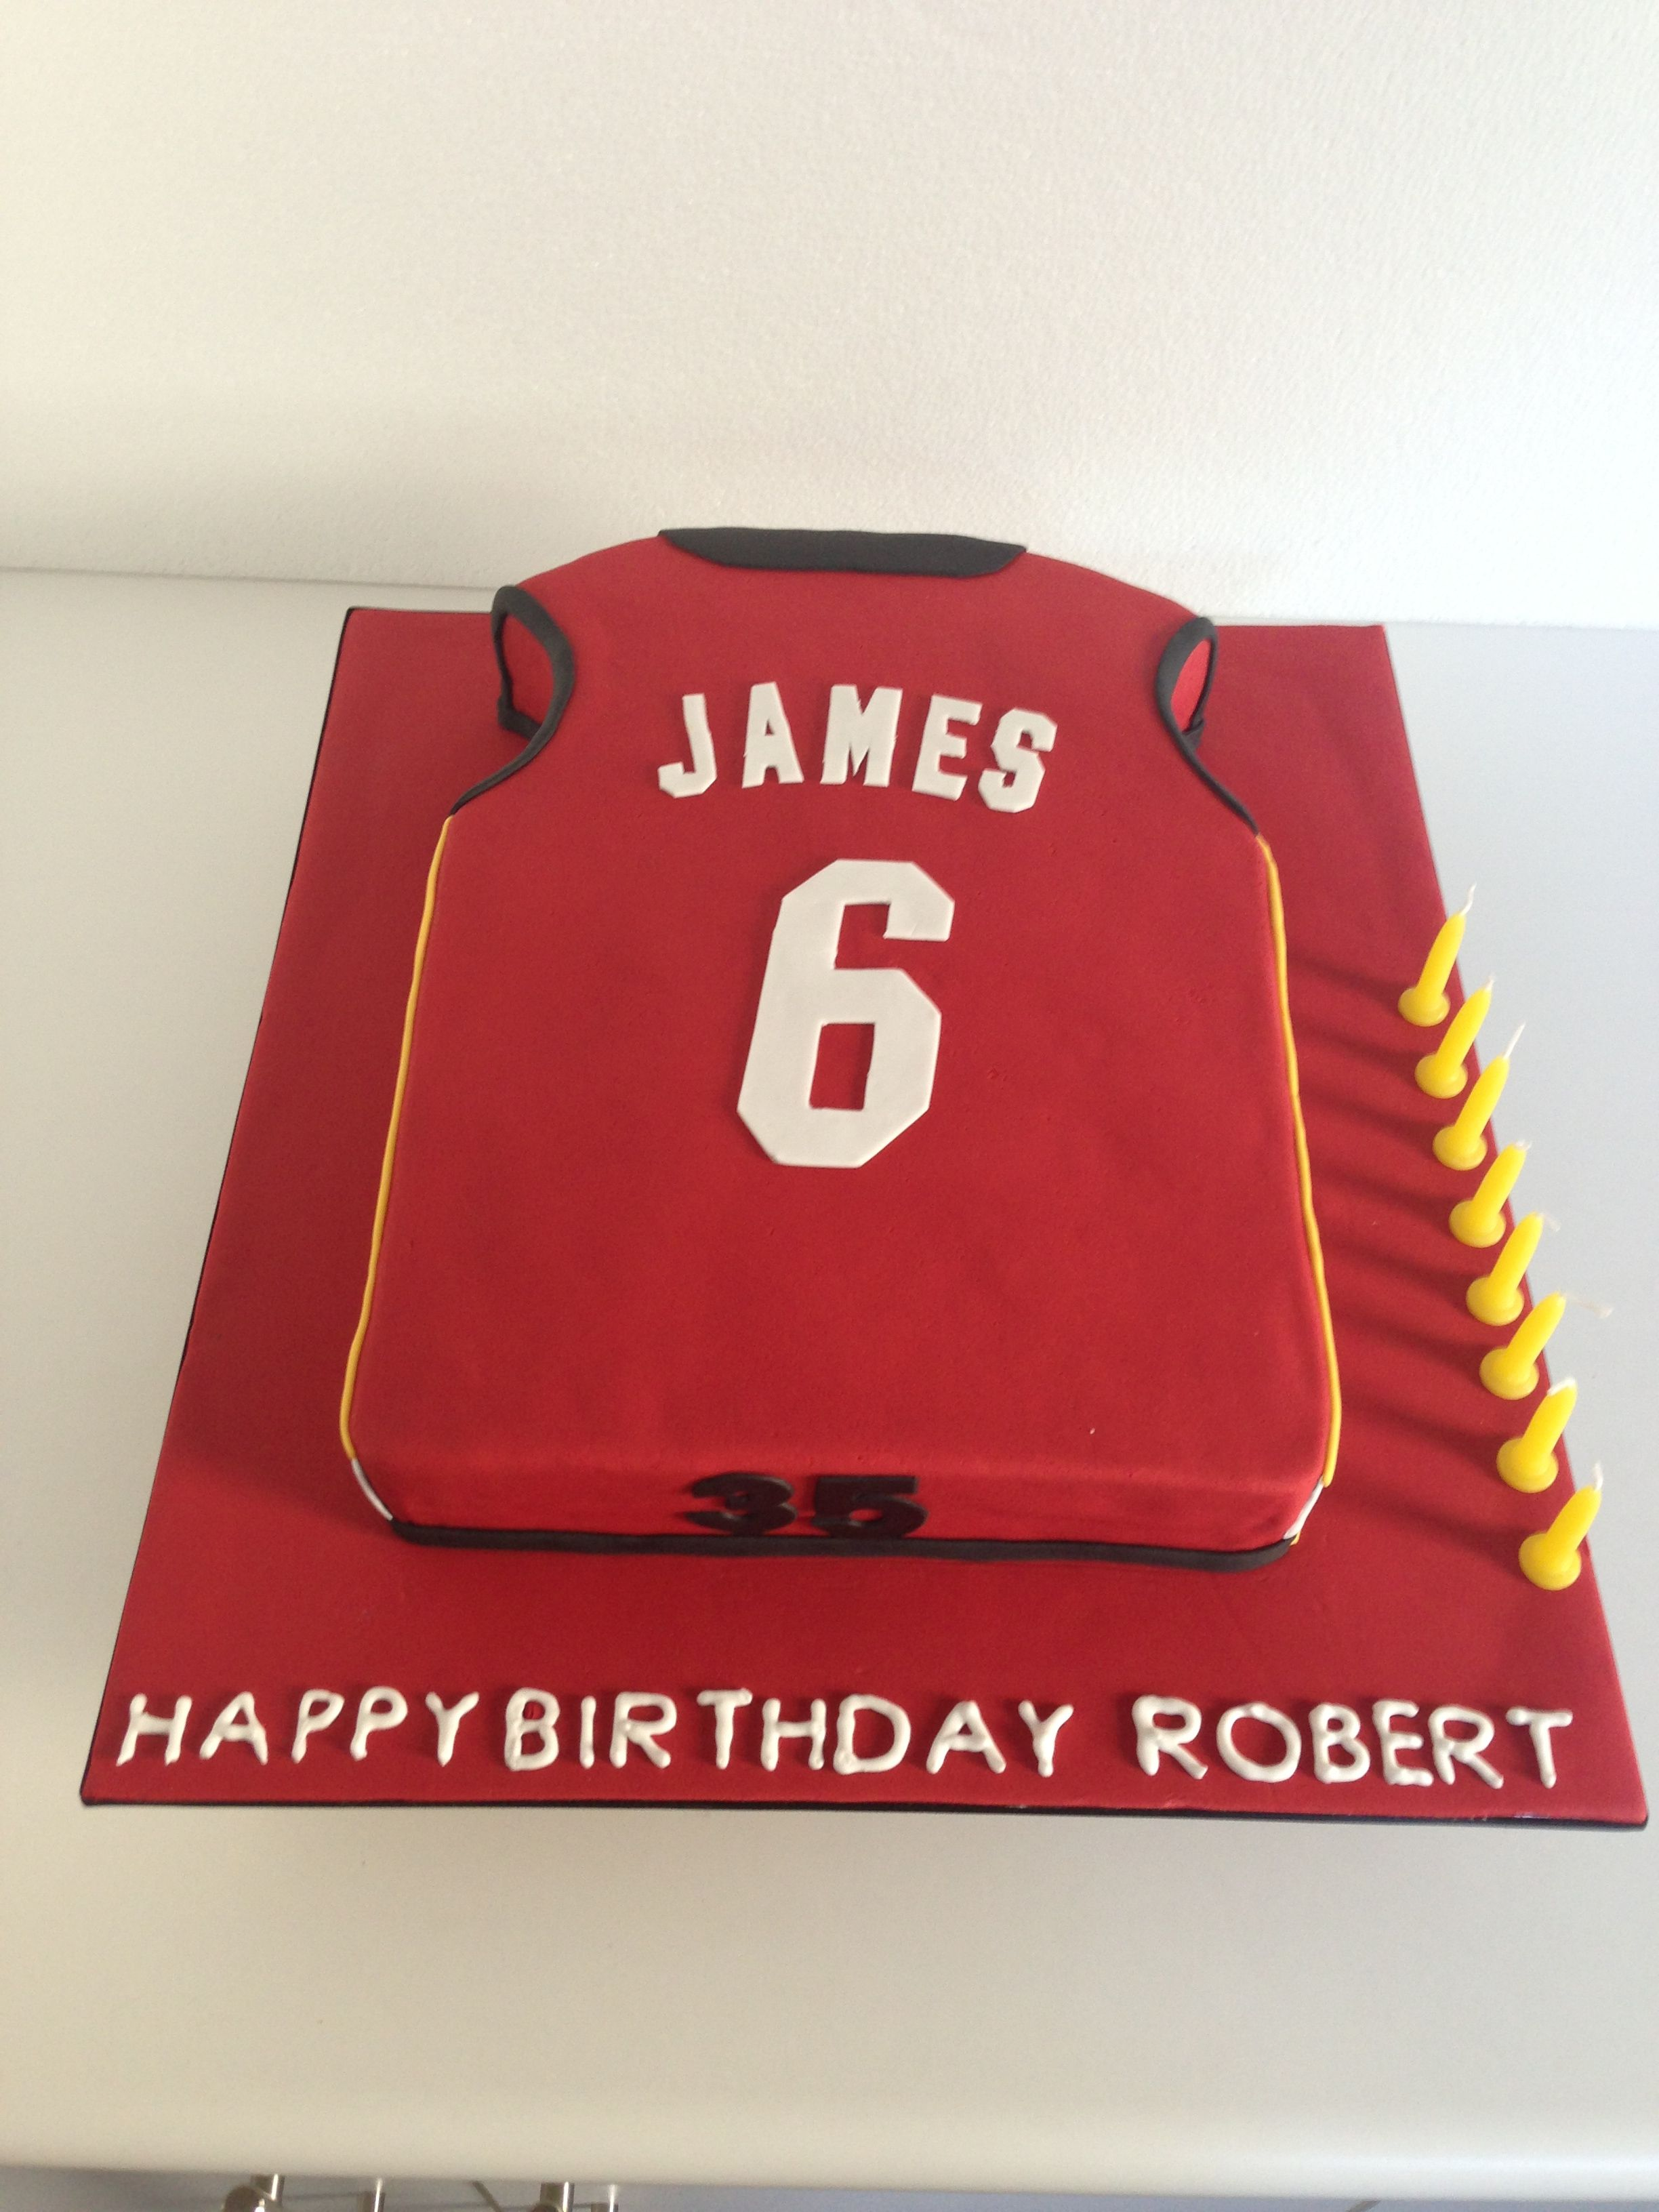 Cake Decorating Yarraville : LeBron James Basketball Jersey Cake by Finesse Cakes Melbourne Cakes! Pinterest Lebron ...